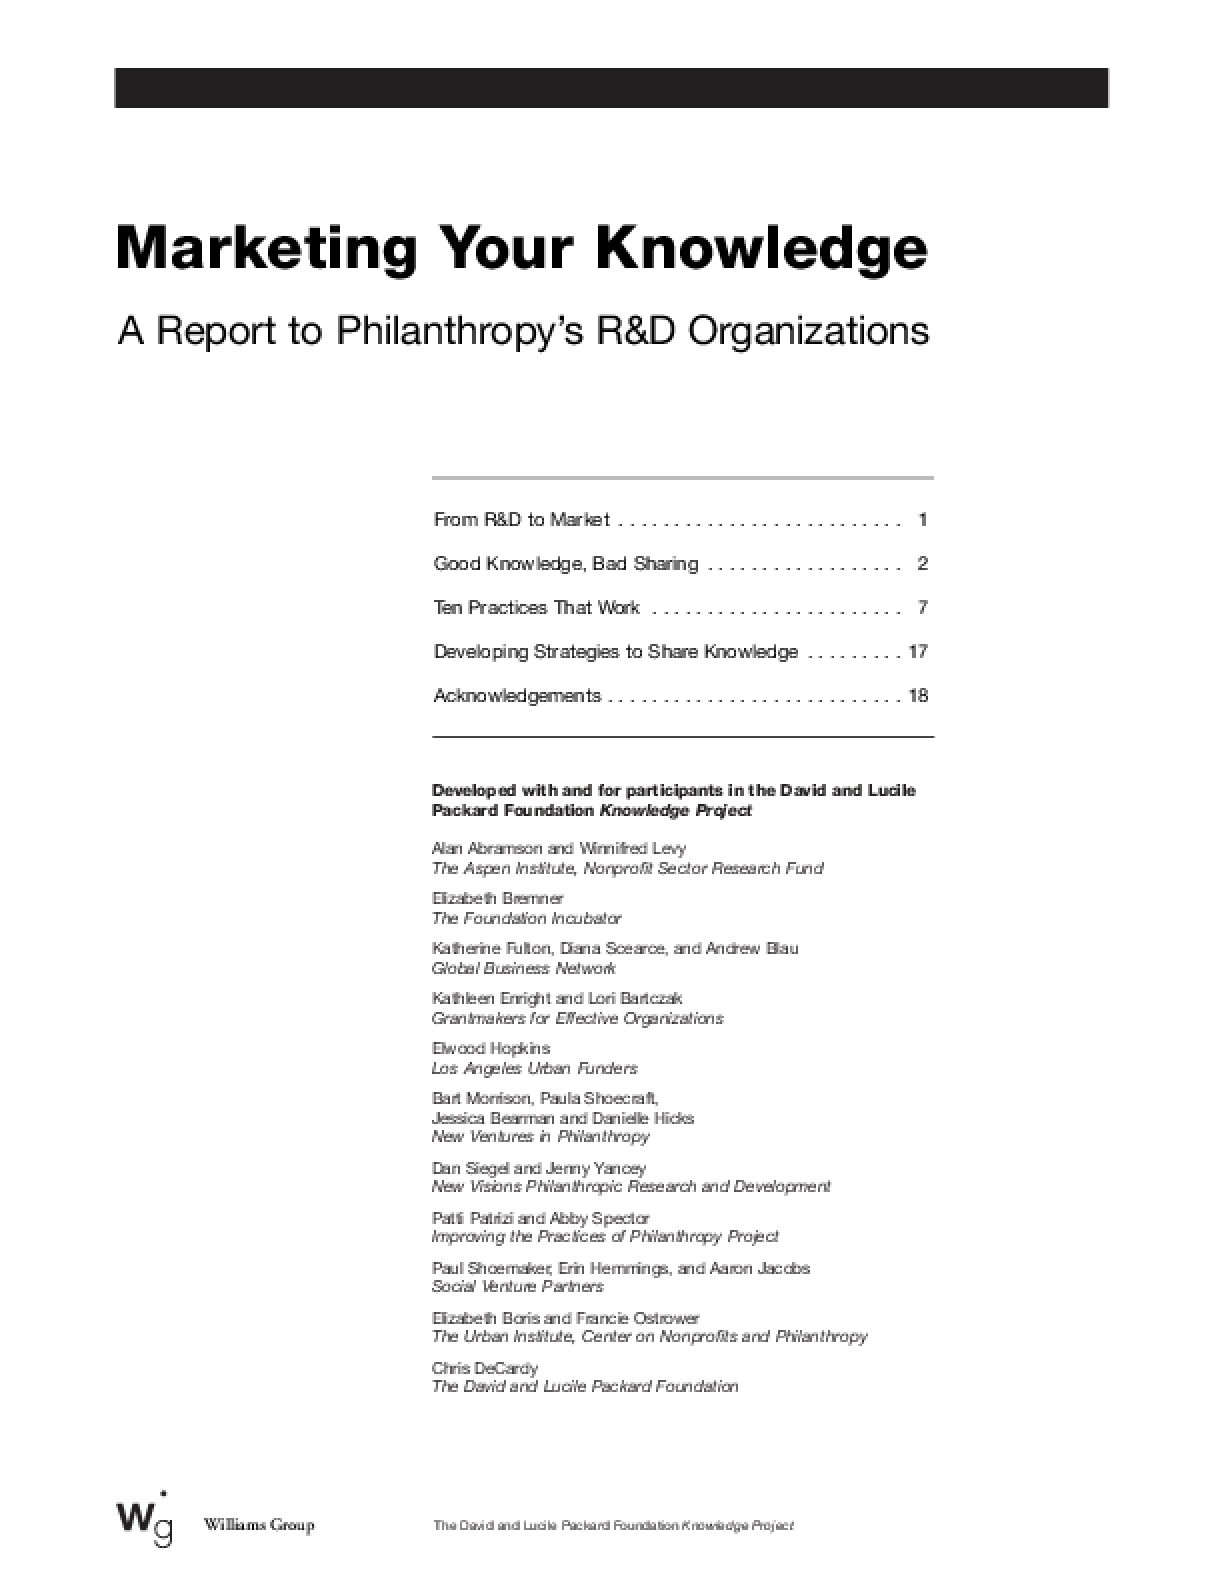 Marketing Your Knowledge: A Report to Philanthropy's R&D Organizations